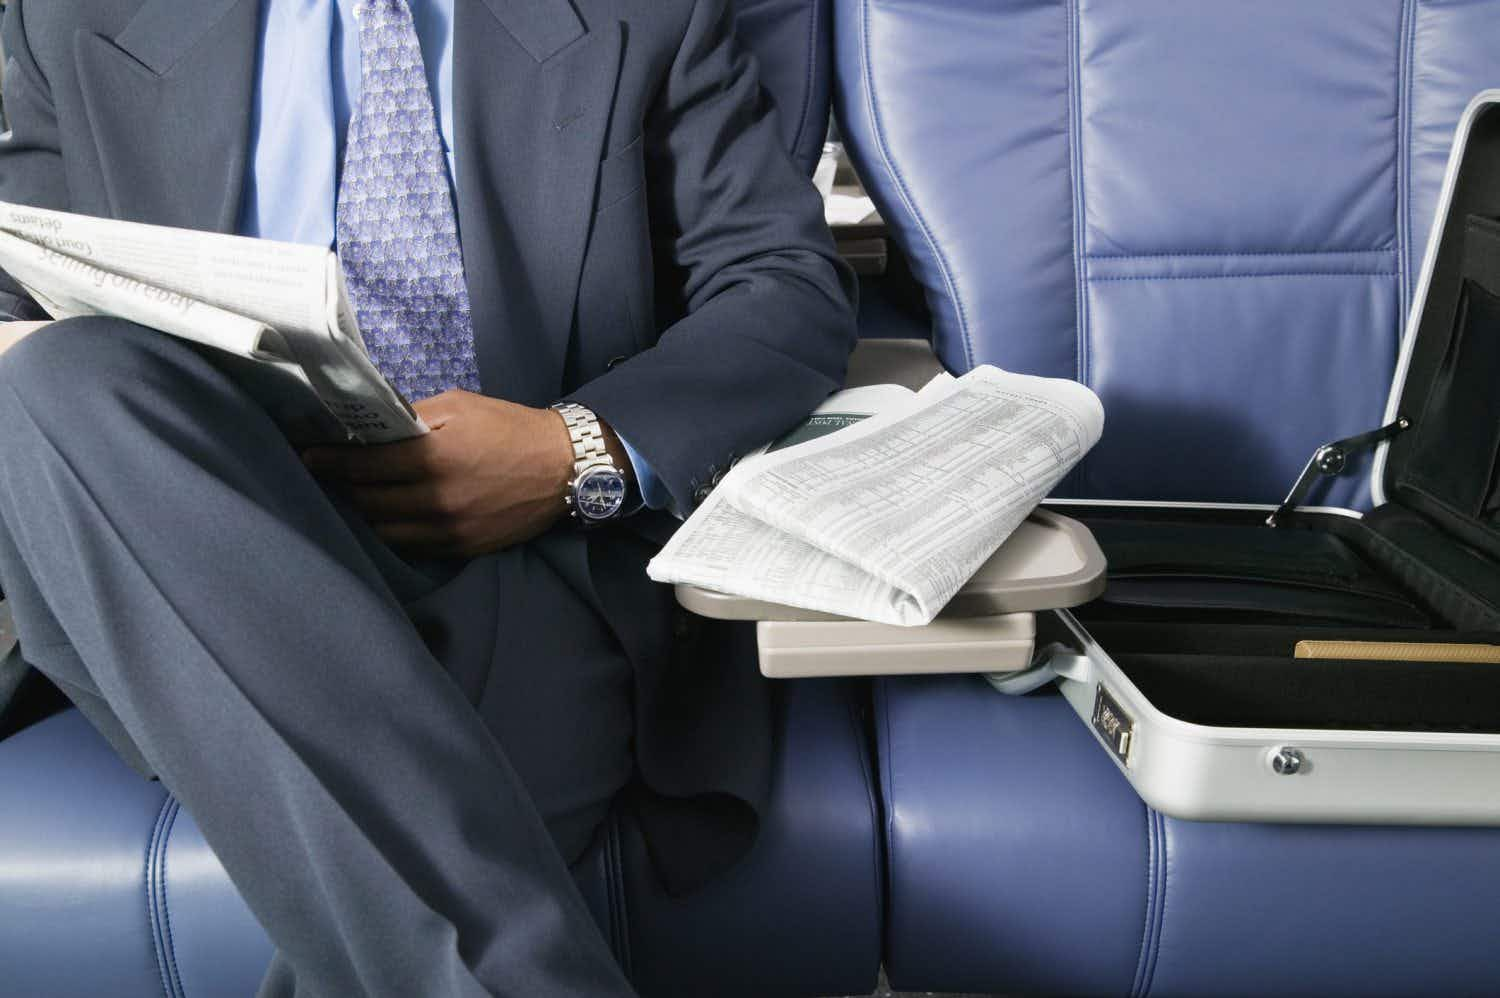 This airline's new fare guarantees an empty middle seat beside you